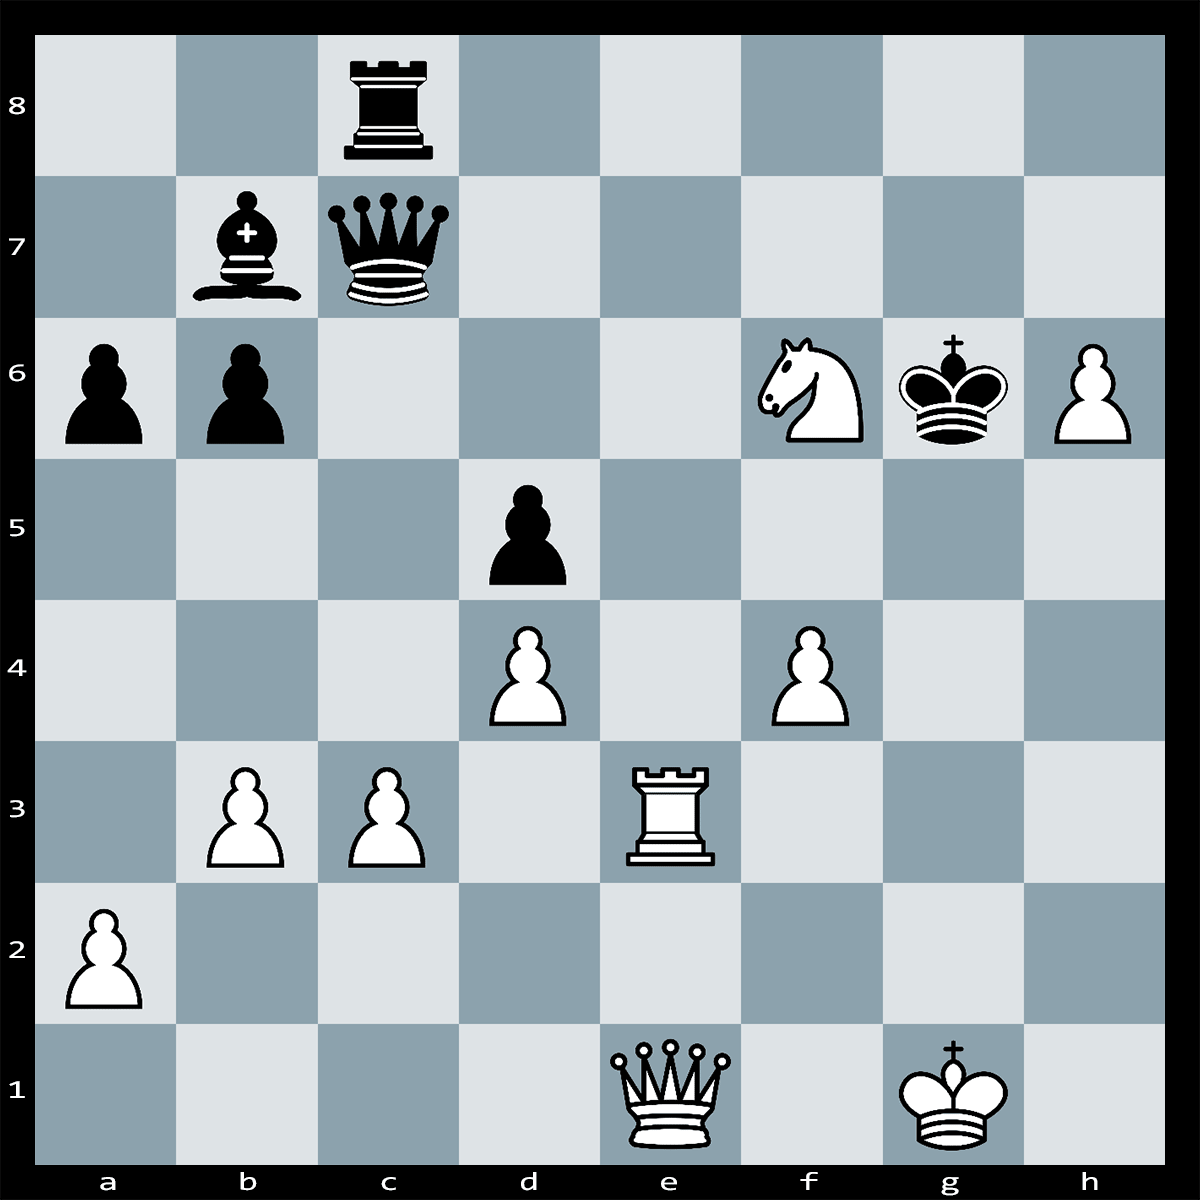 White to Move and Mate in 3 Moves - Chess Puzzle #3